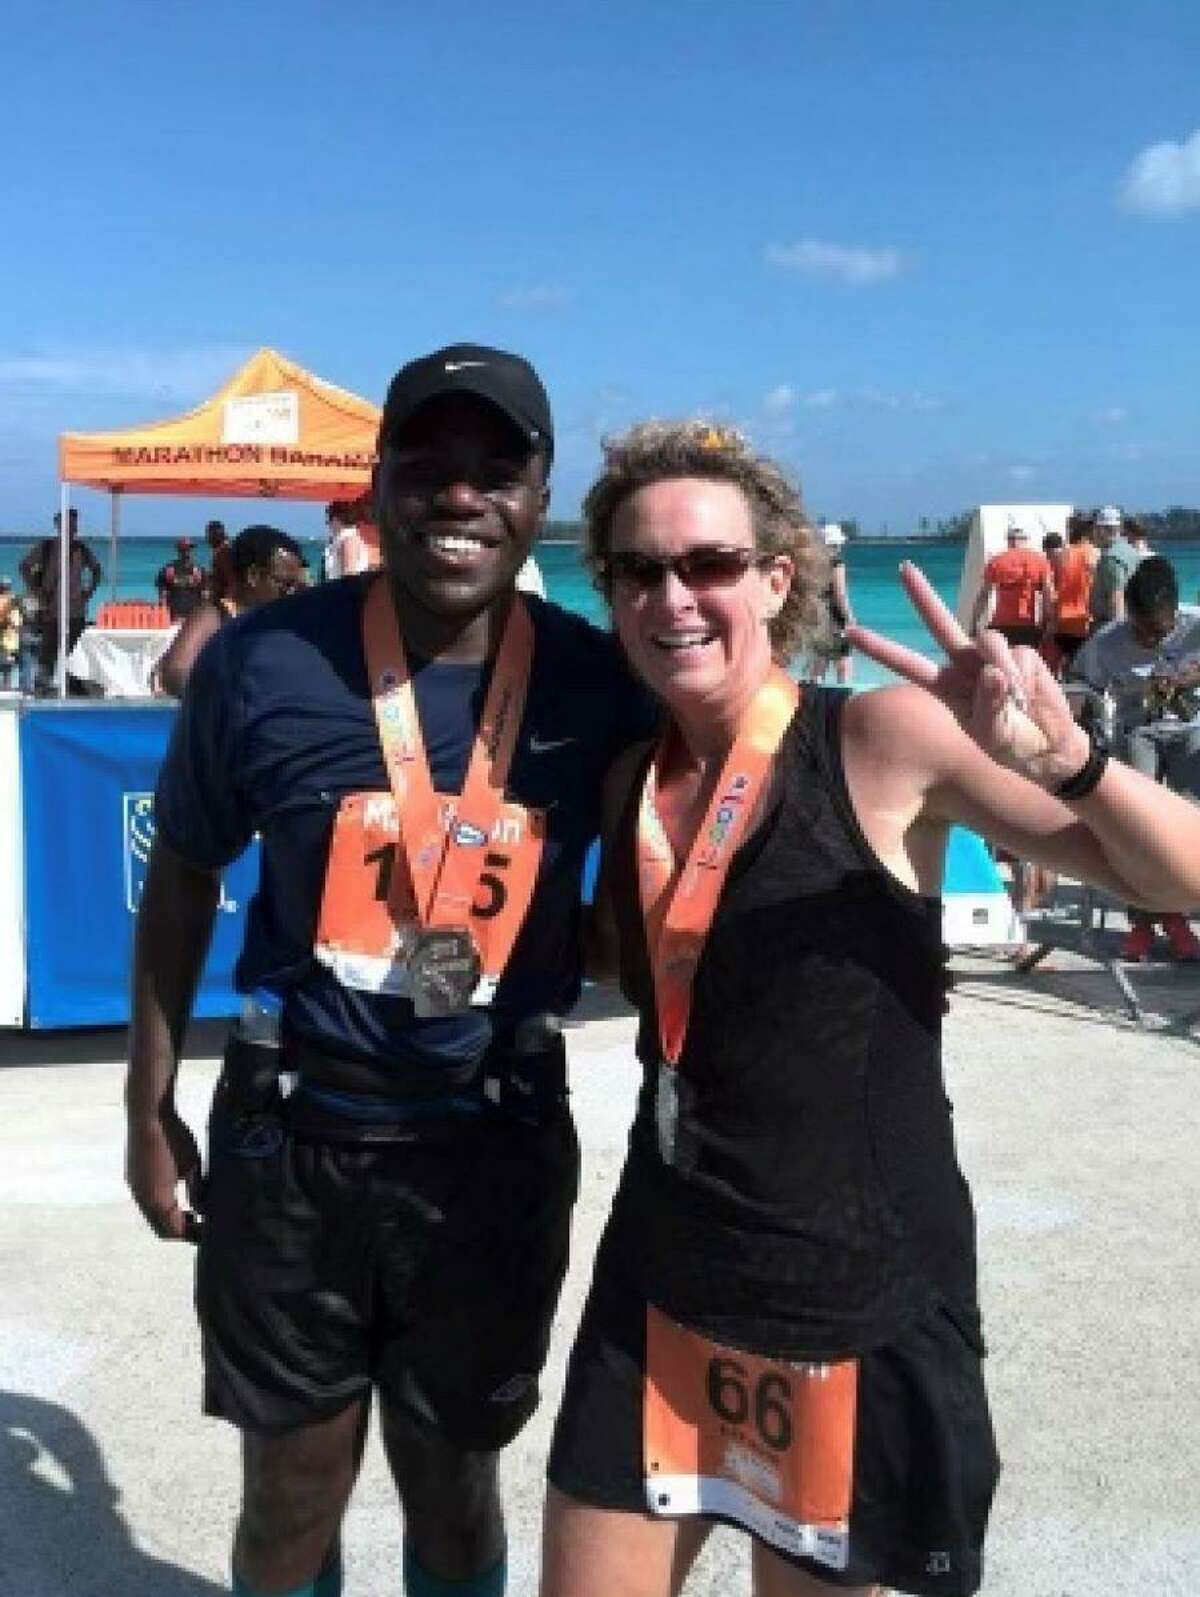 Gladstone ran her qualifying run for the Marathon Maniacs club in the Bahamas in 2016. During the run she met David, pictured, whom she helped shoulder through the sweltering Bahamian heat.